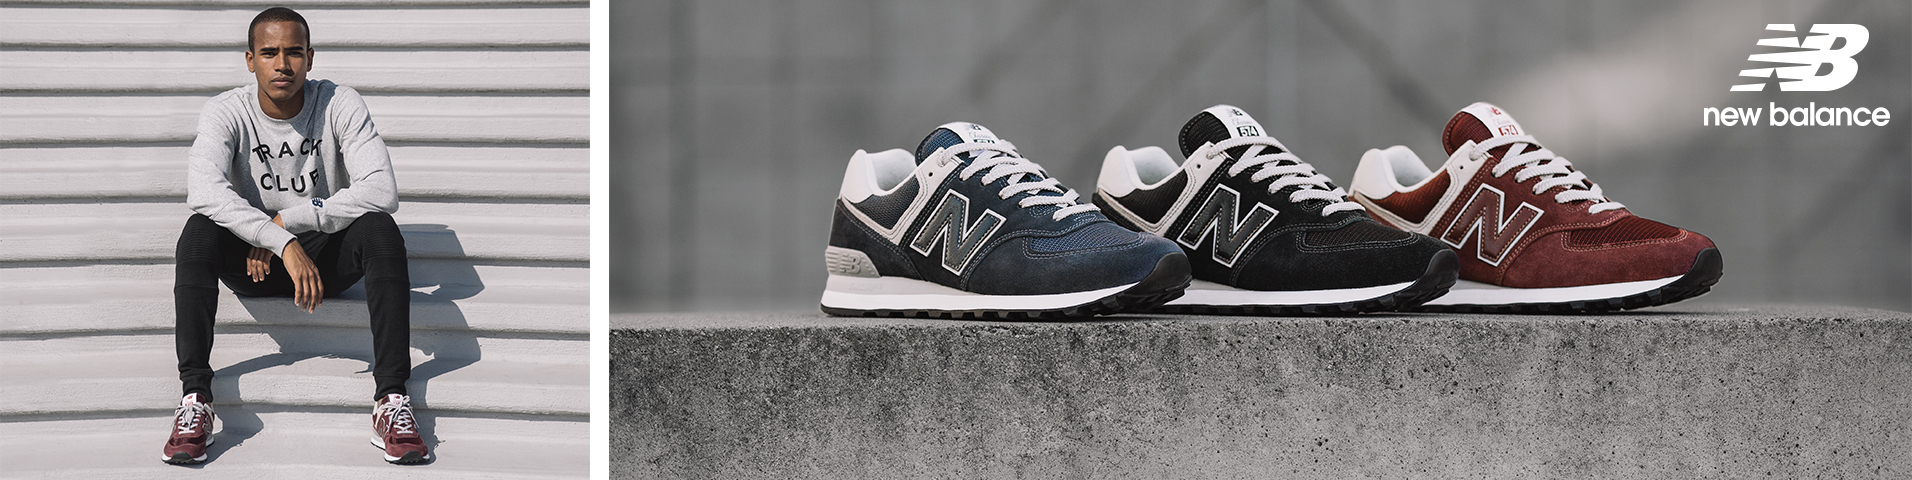 new balance herrenmode